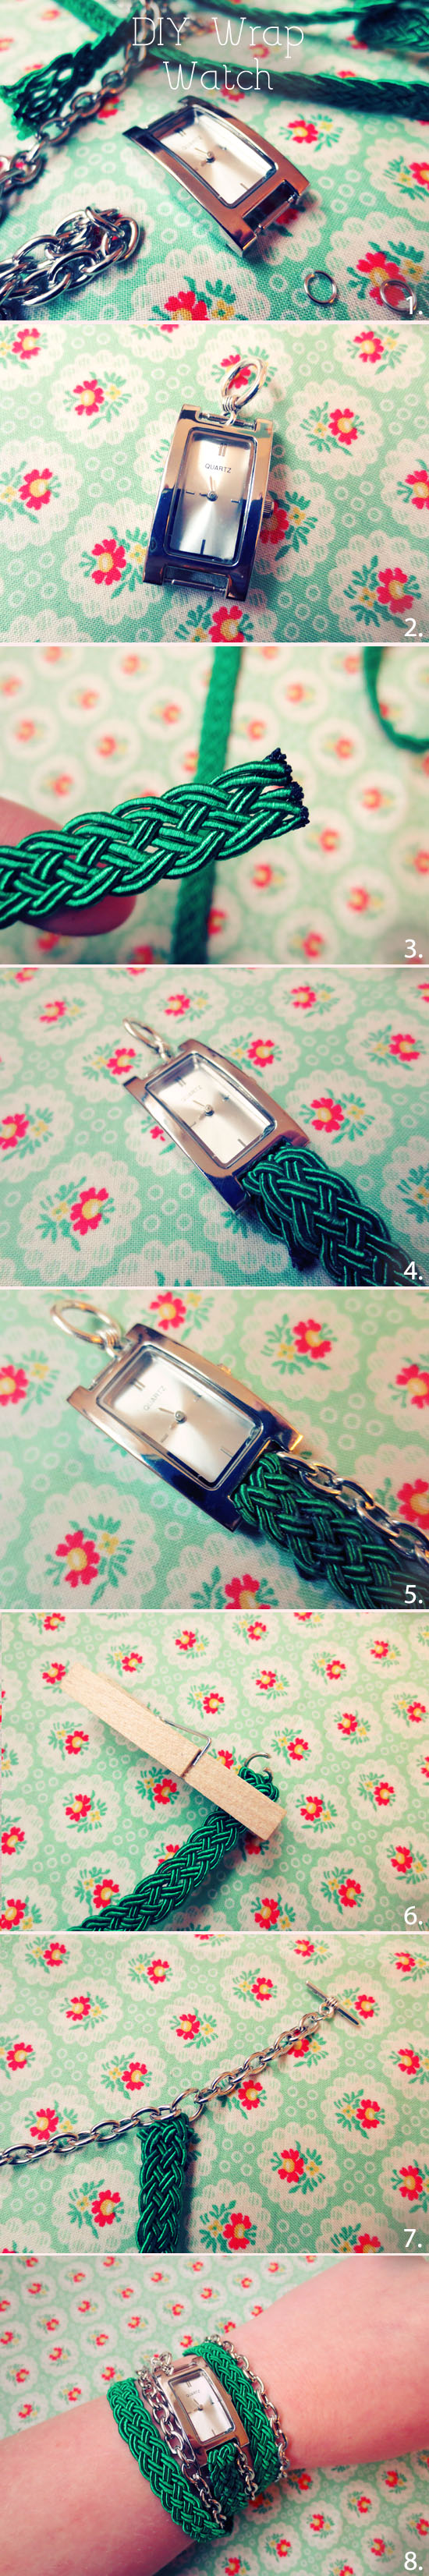 Make your own DIY version of a wrap watch! @By Wilma